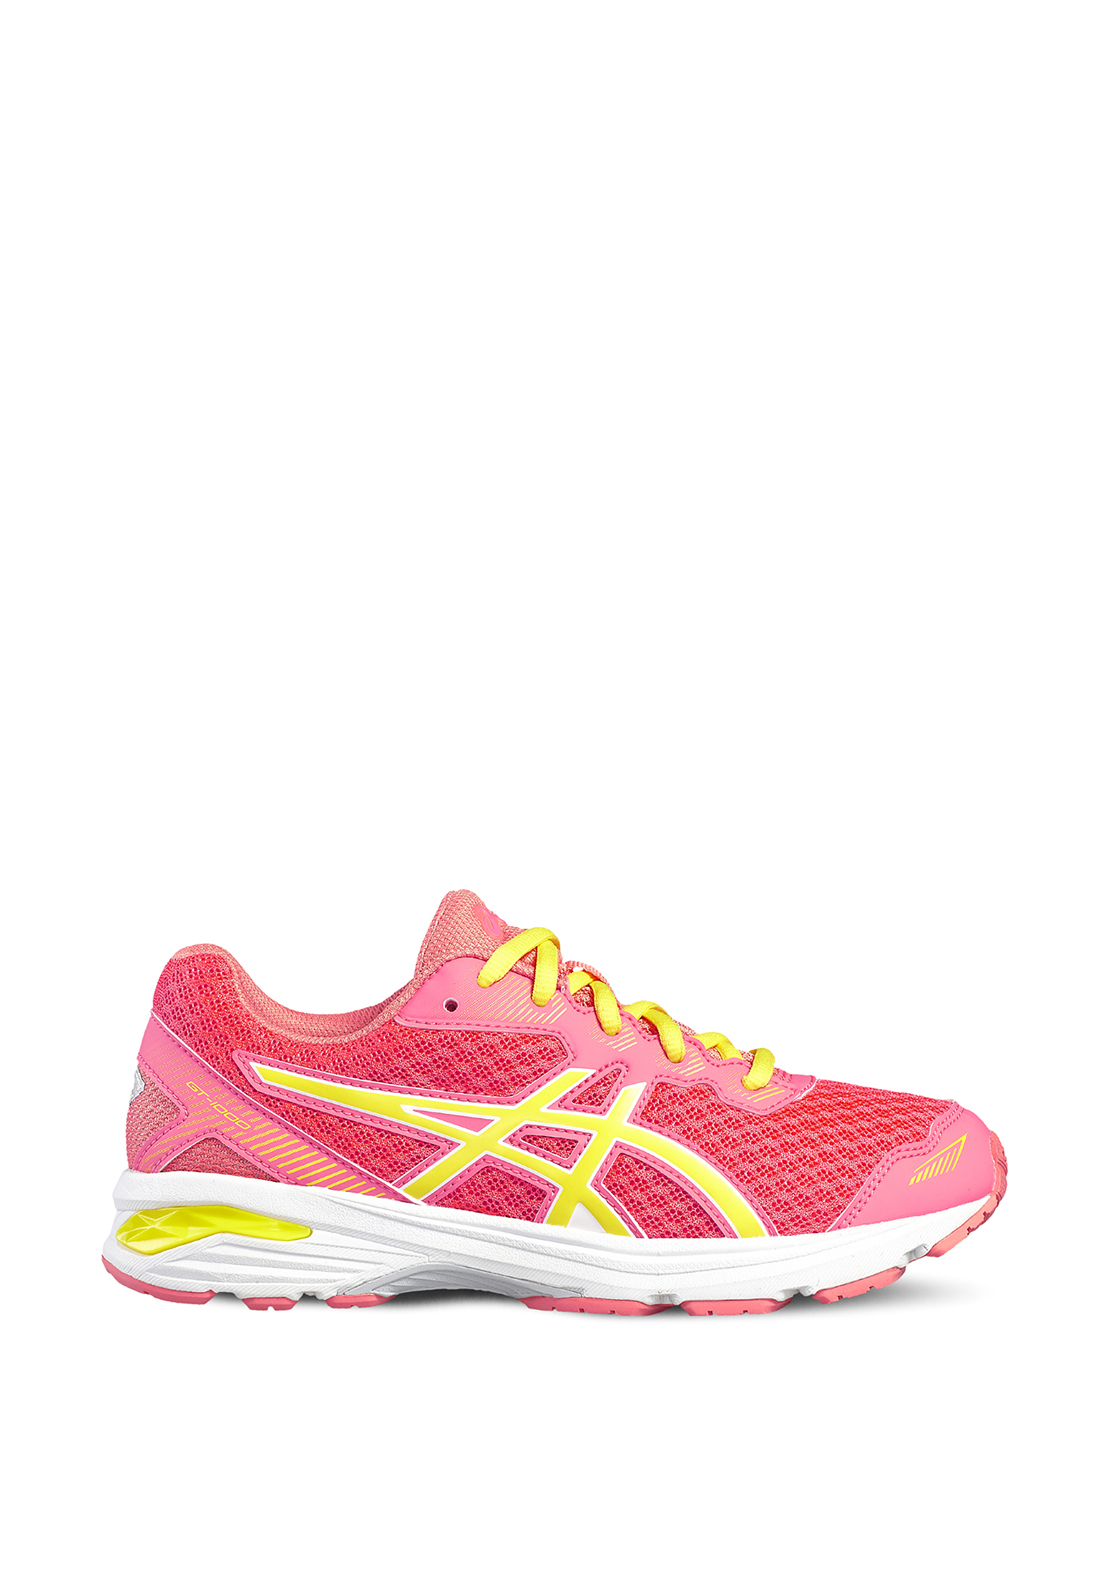 Asics Girls GT-1000 Runners, Coral and Peach